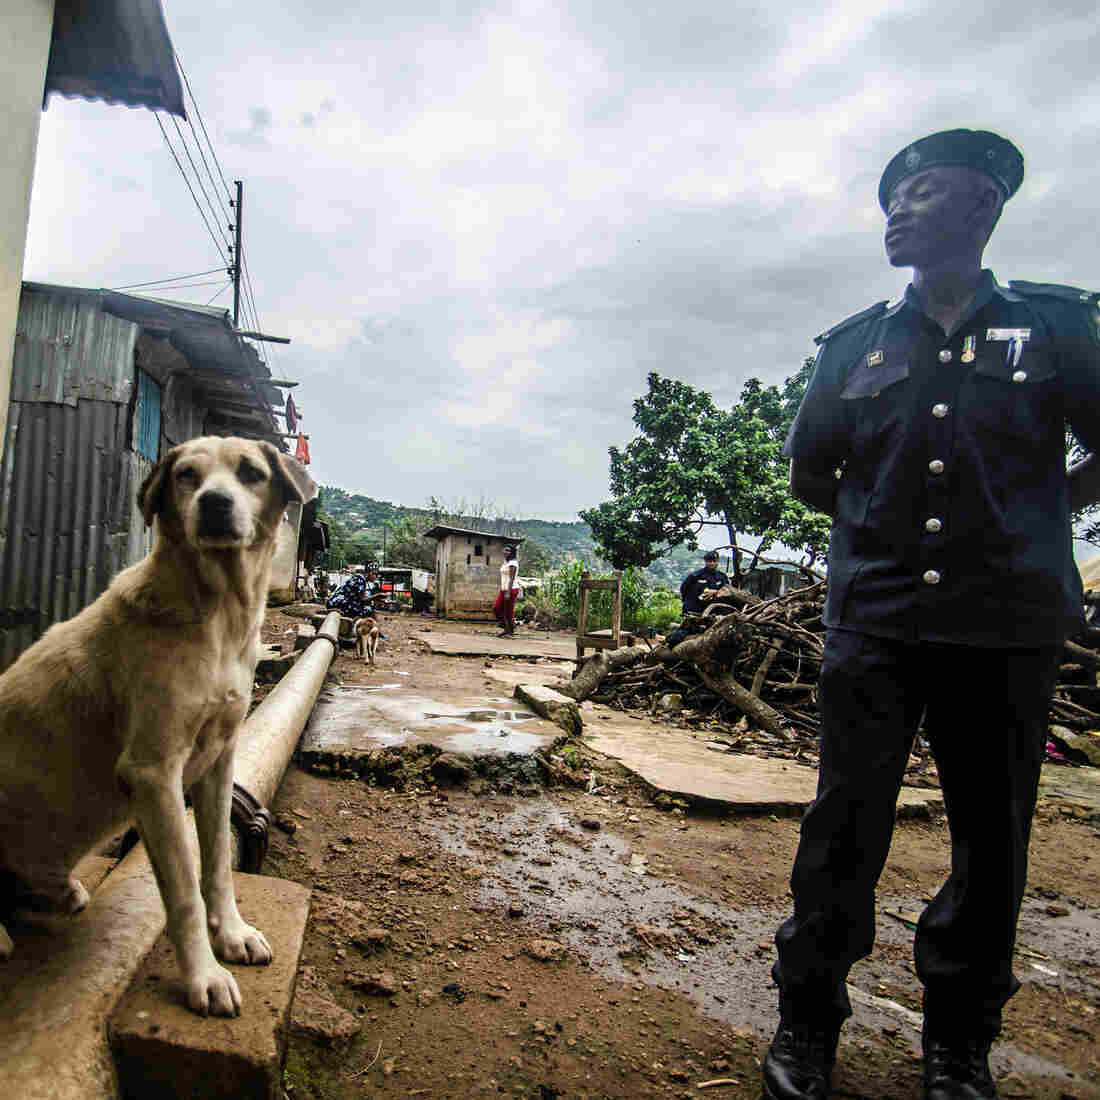 An Ebola Quarantine In Freetown: People Come And Go As They Wish